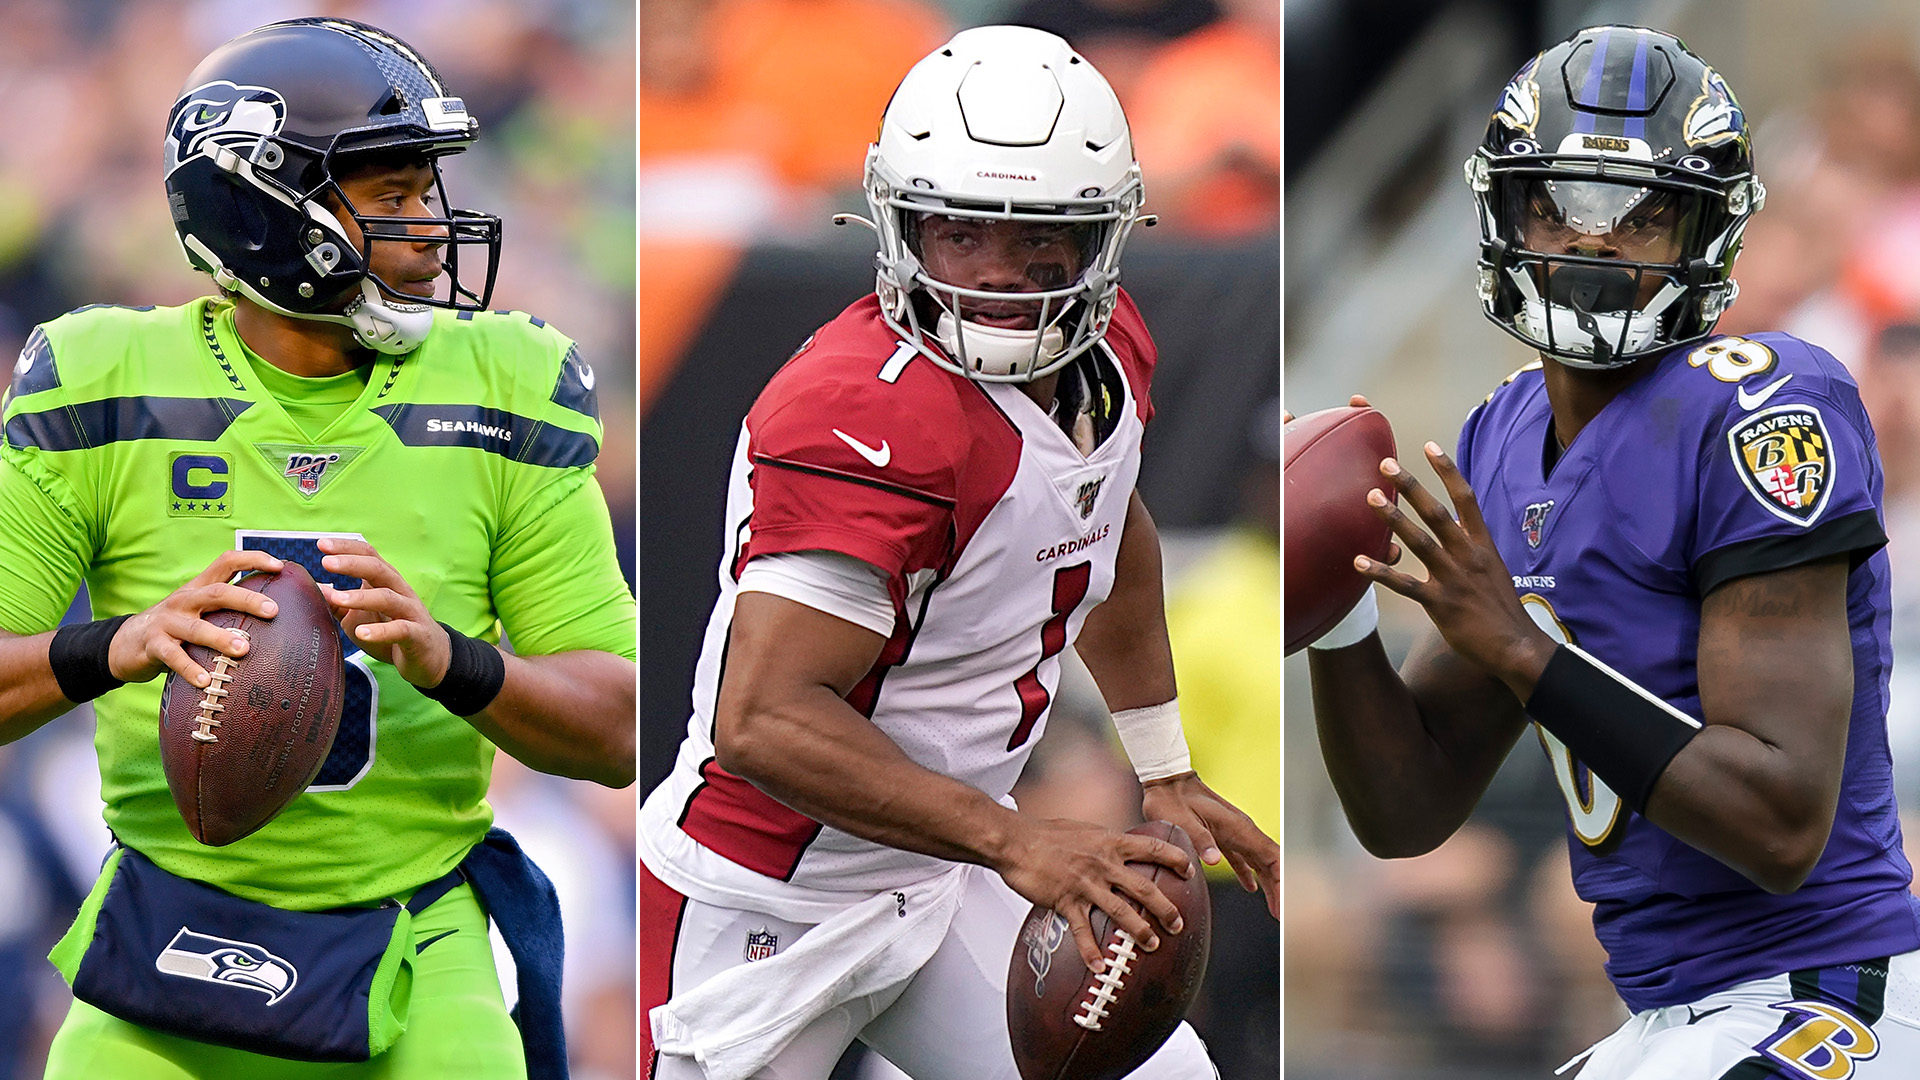 NFL Week 7 Bullet Points: 3 must-know stats previewing every game